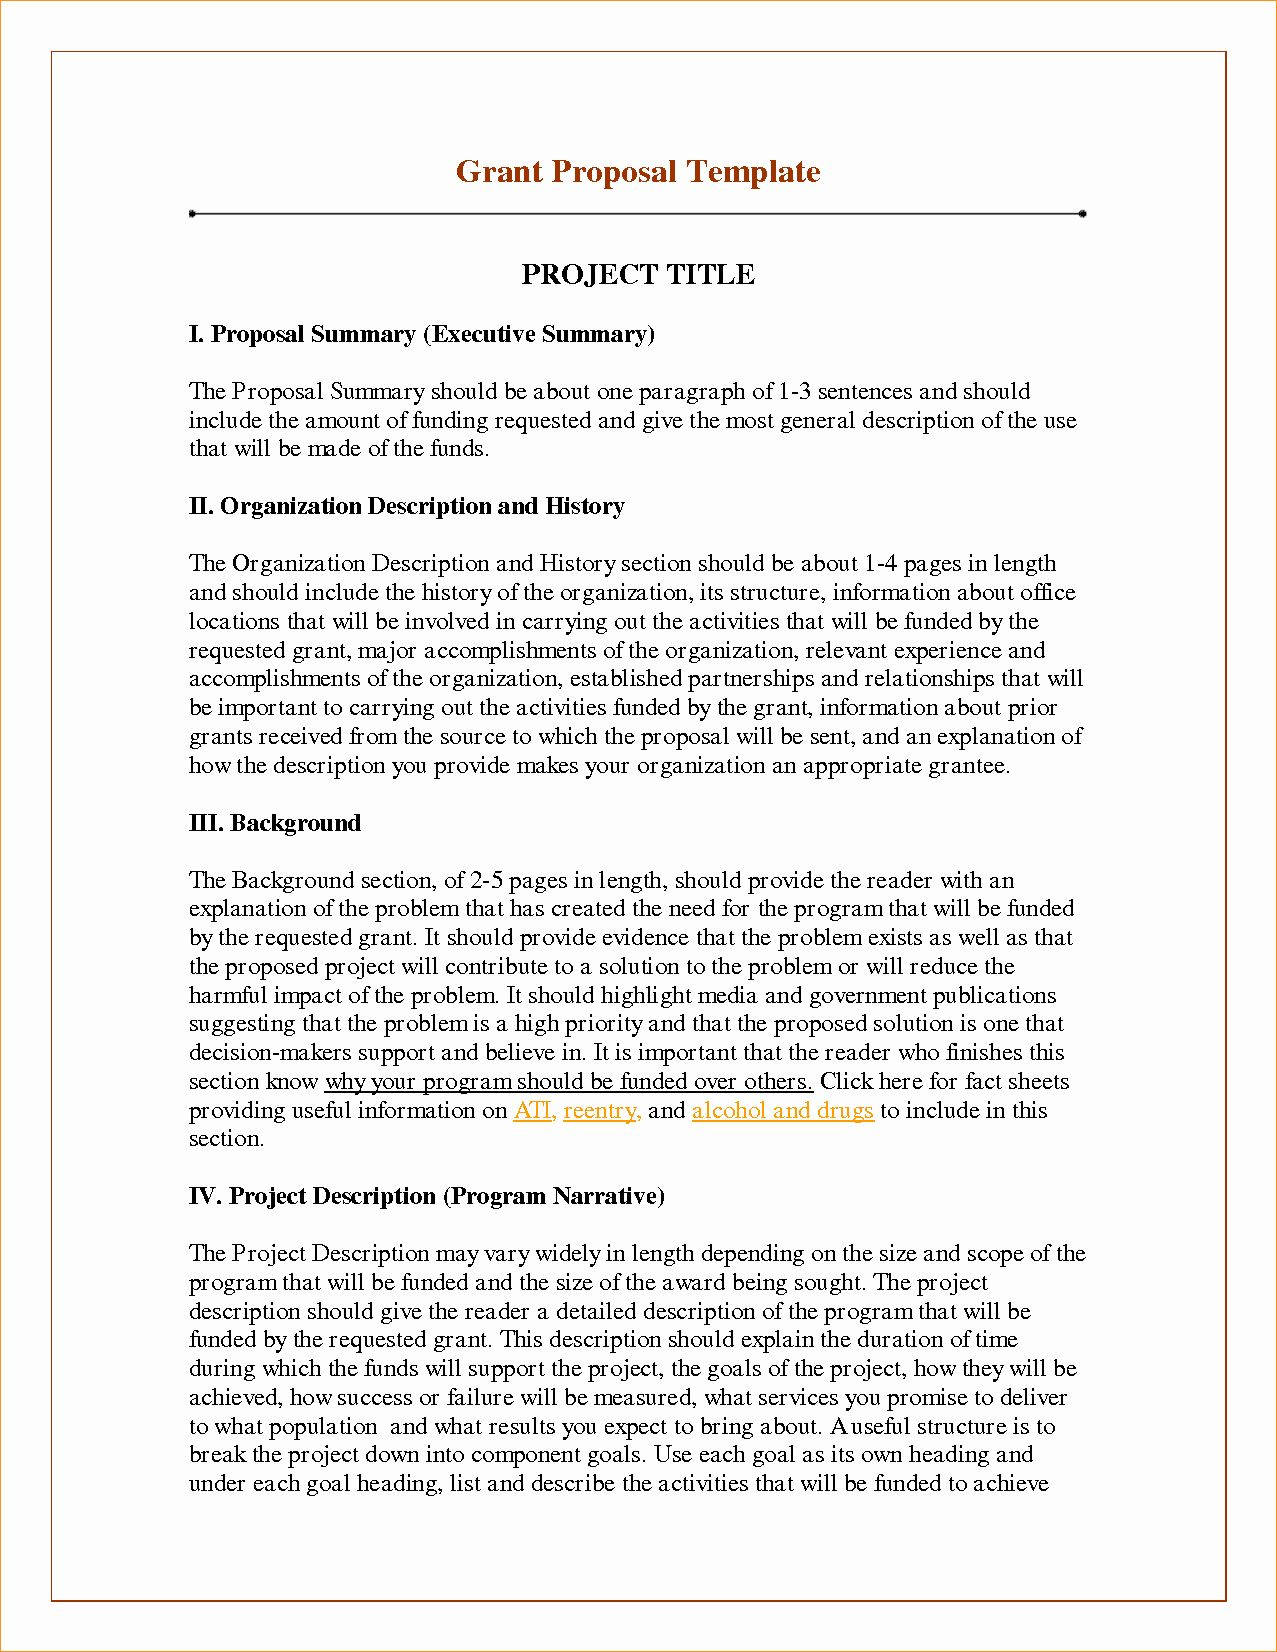 Grant Proposal Template Word In 2020 Project Proposal Template